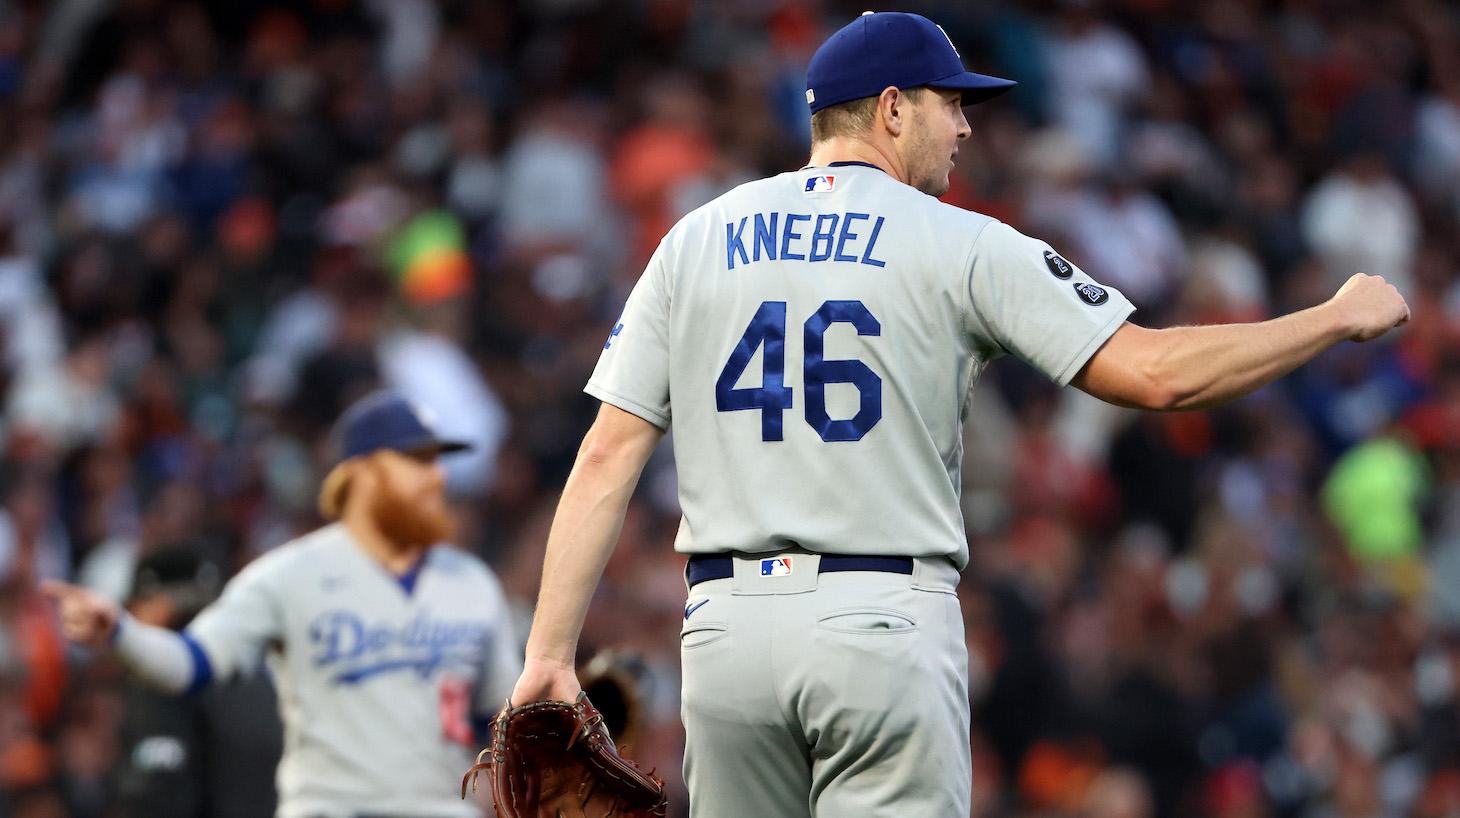 SAN FRANCISCO, CALIFORNIA - OCTOBER 14: Corey Knebel #46 of the Los Angeles Dodgers reacts after an out against against Darin Ruf #33 of the San Francisco Giants during the first inning in game 5 of the National League Division Series at Oracle Park on October 14, 2021 in San Francisco, California. (Photo by Harry How/Getty Images)